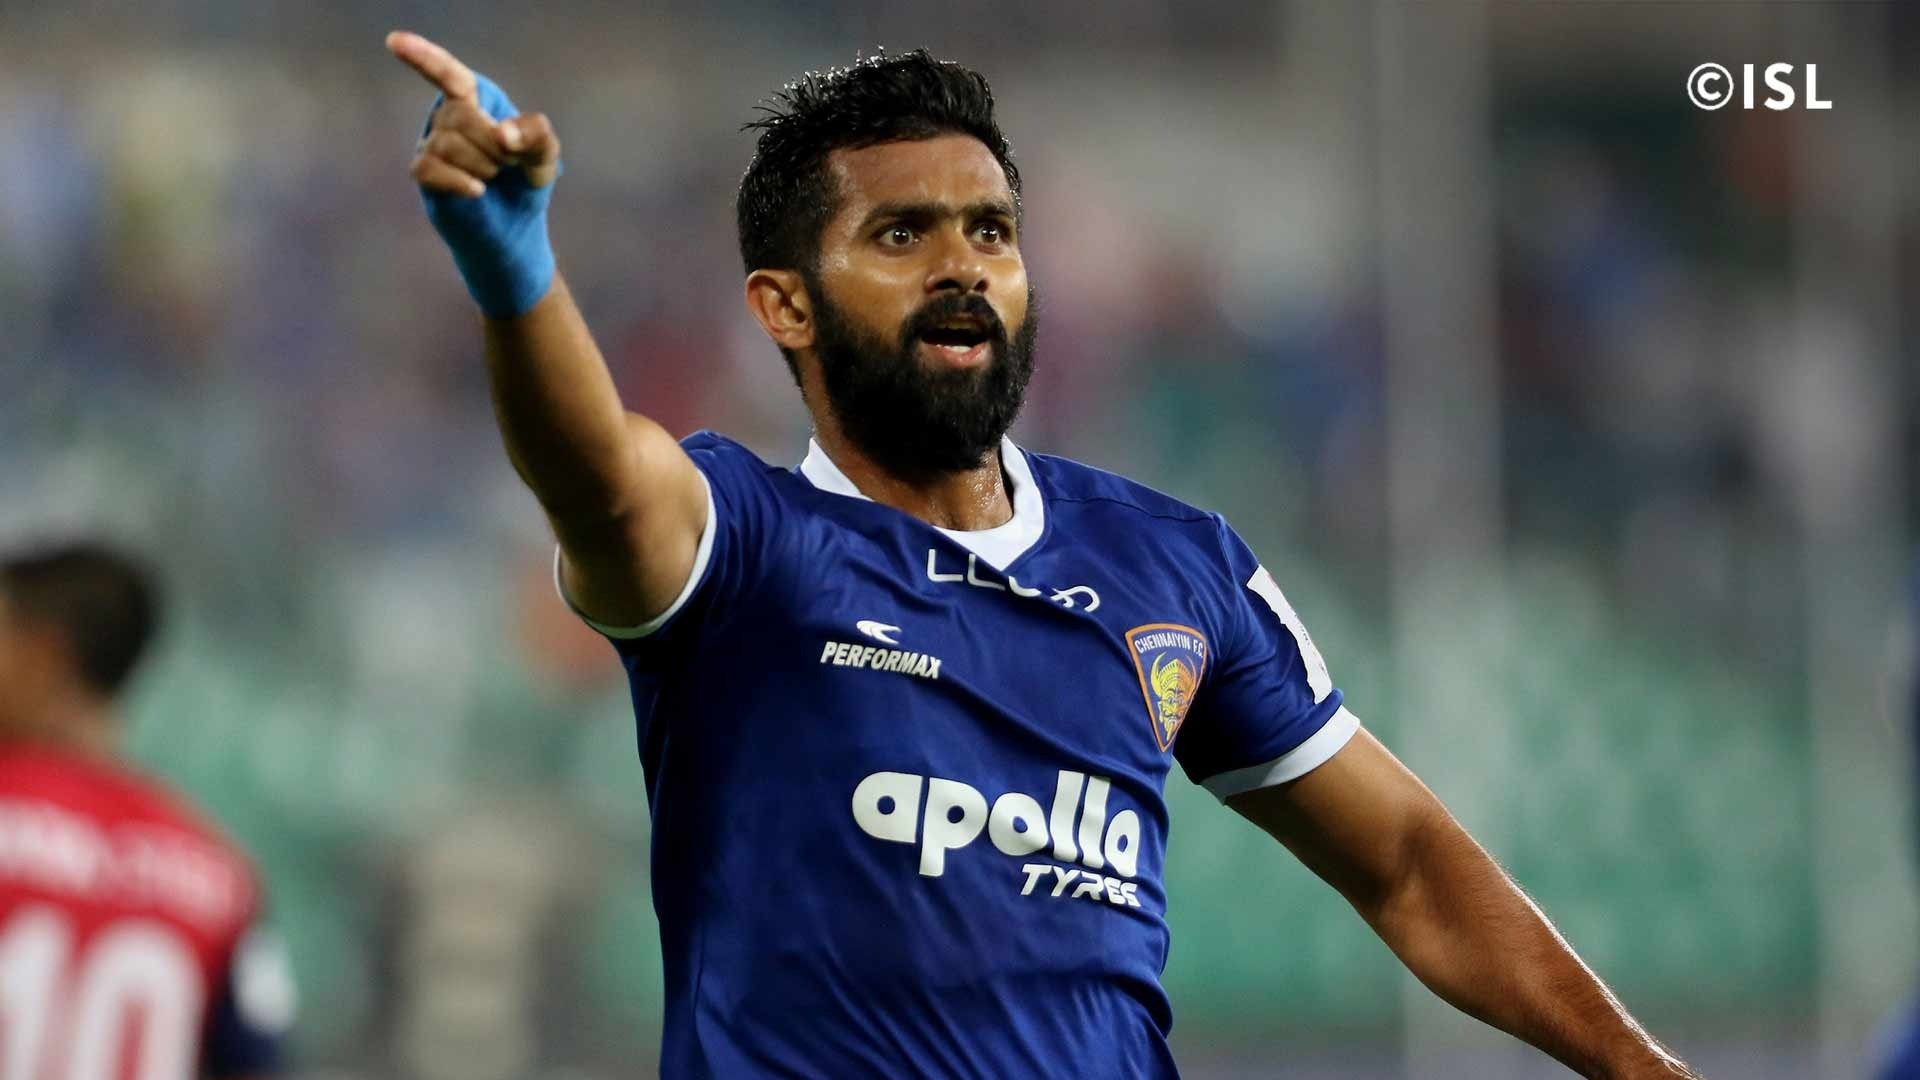 Kerala Blasters sign experienced forward Mohammed Rafi